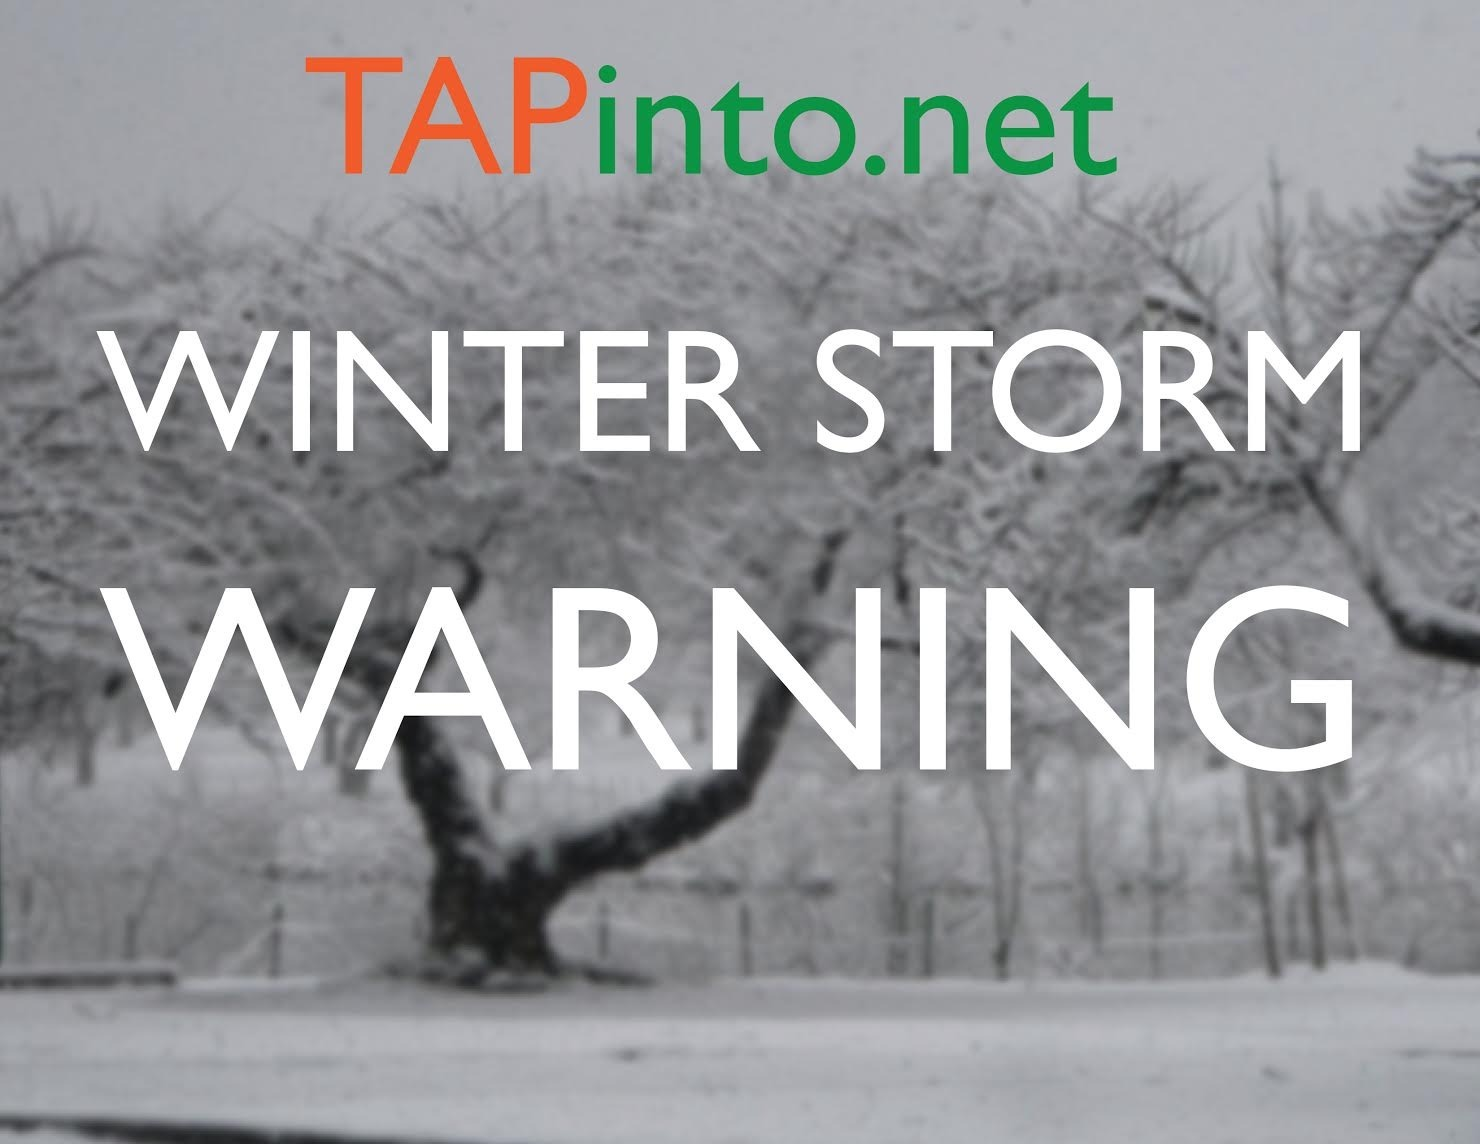 98a4a97b0188291742db_Winter_Storm_Warning_-_TAP_graphic.jpg